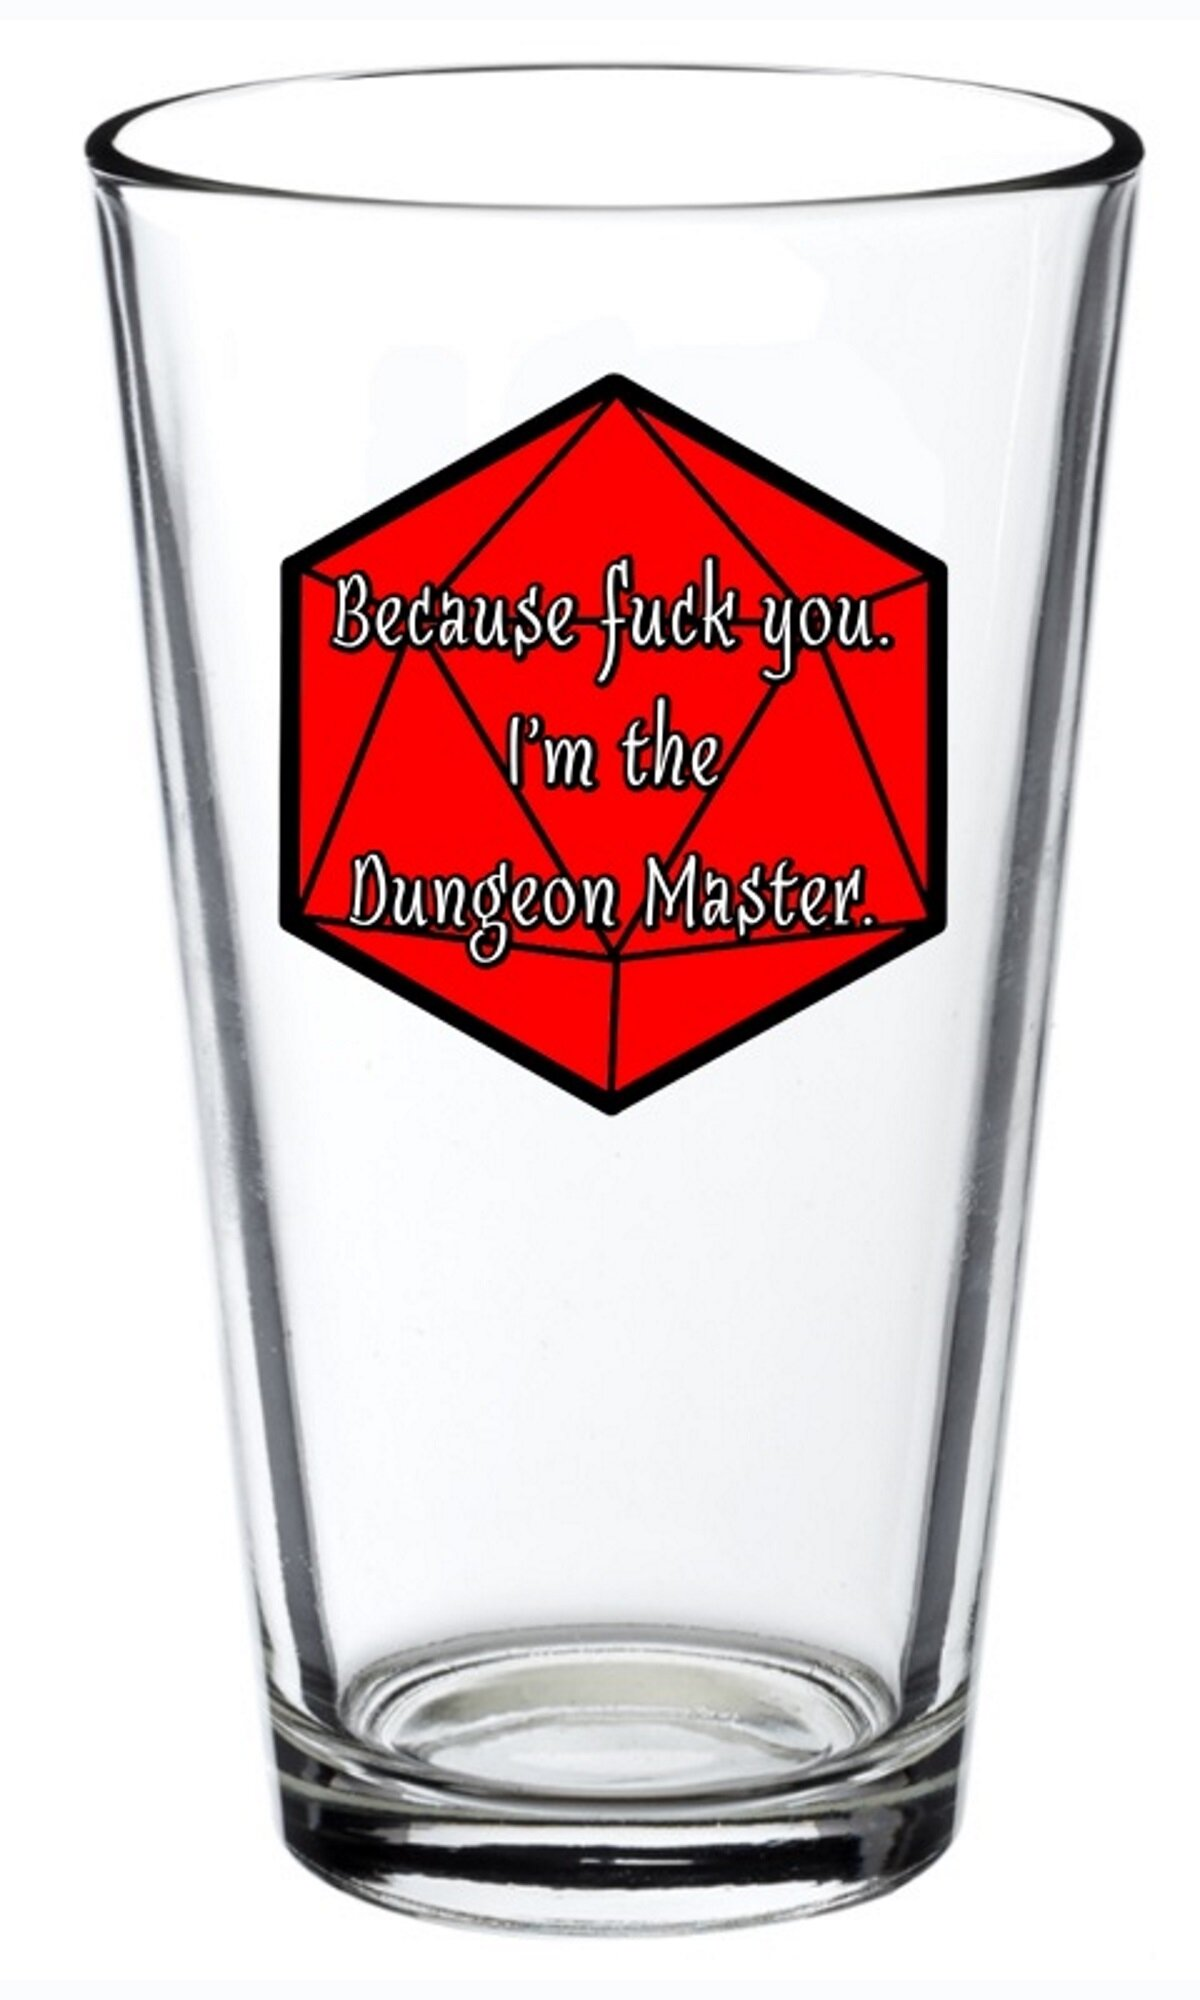 Because Fuck You I'm the Dungeon Master